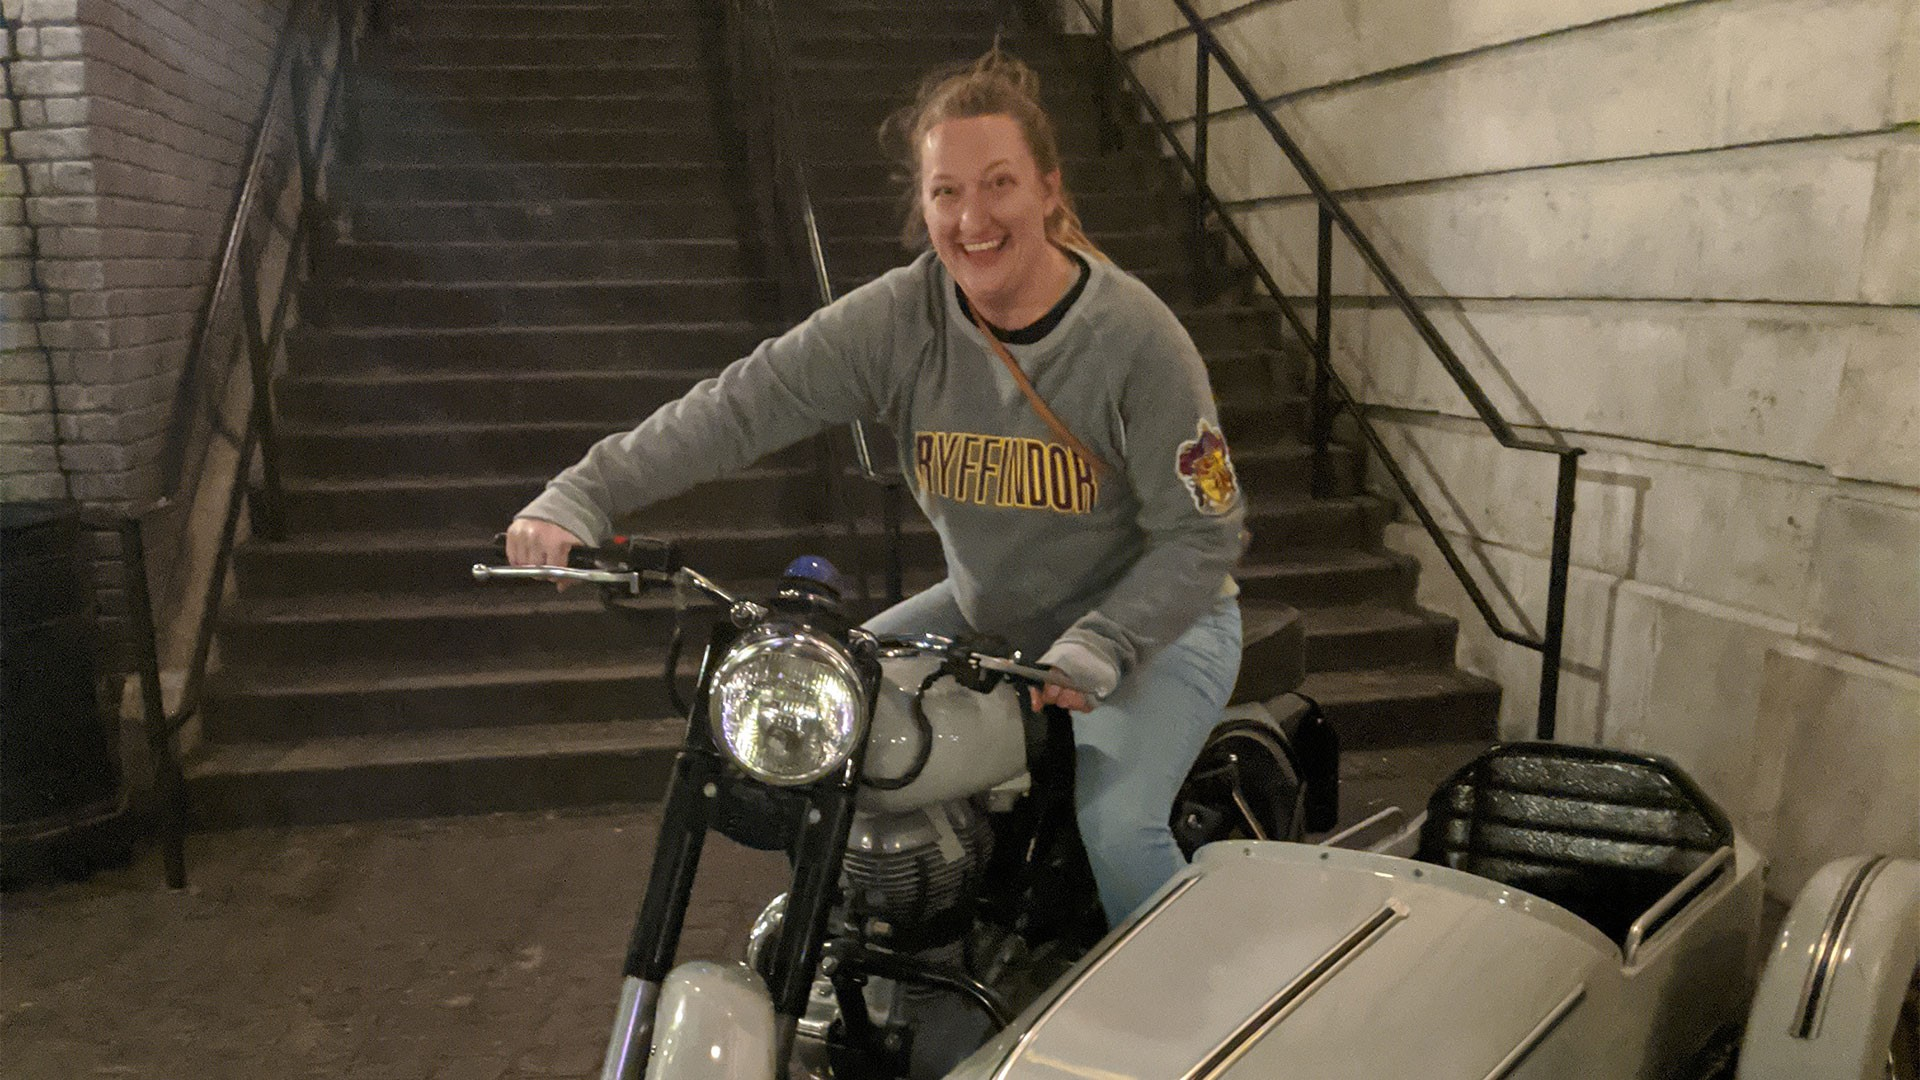 Gina on a motorcycle